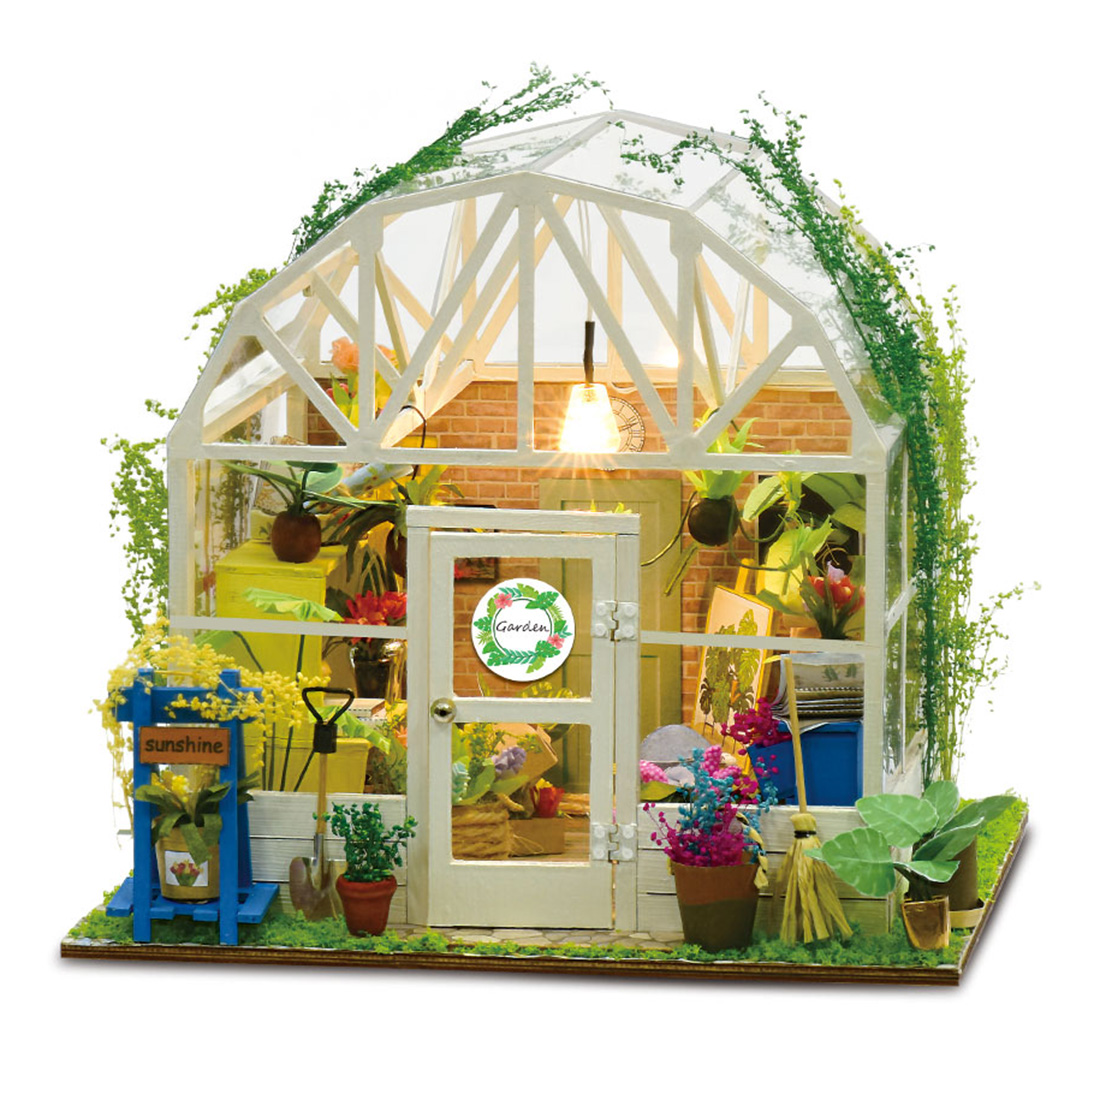 NFSTRIKE DIY Creative Handmade Theme Wooden Cabin Assembly Building Model Toy Set with Light - Romantic Flower House